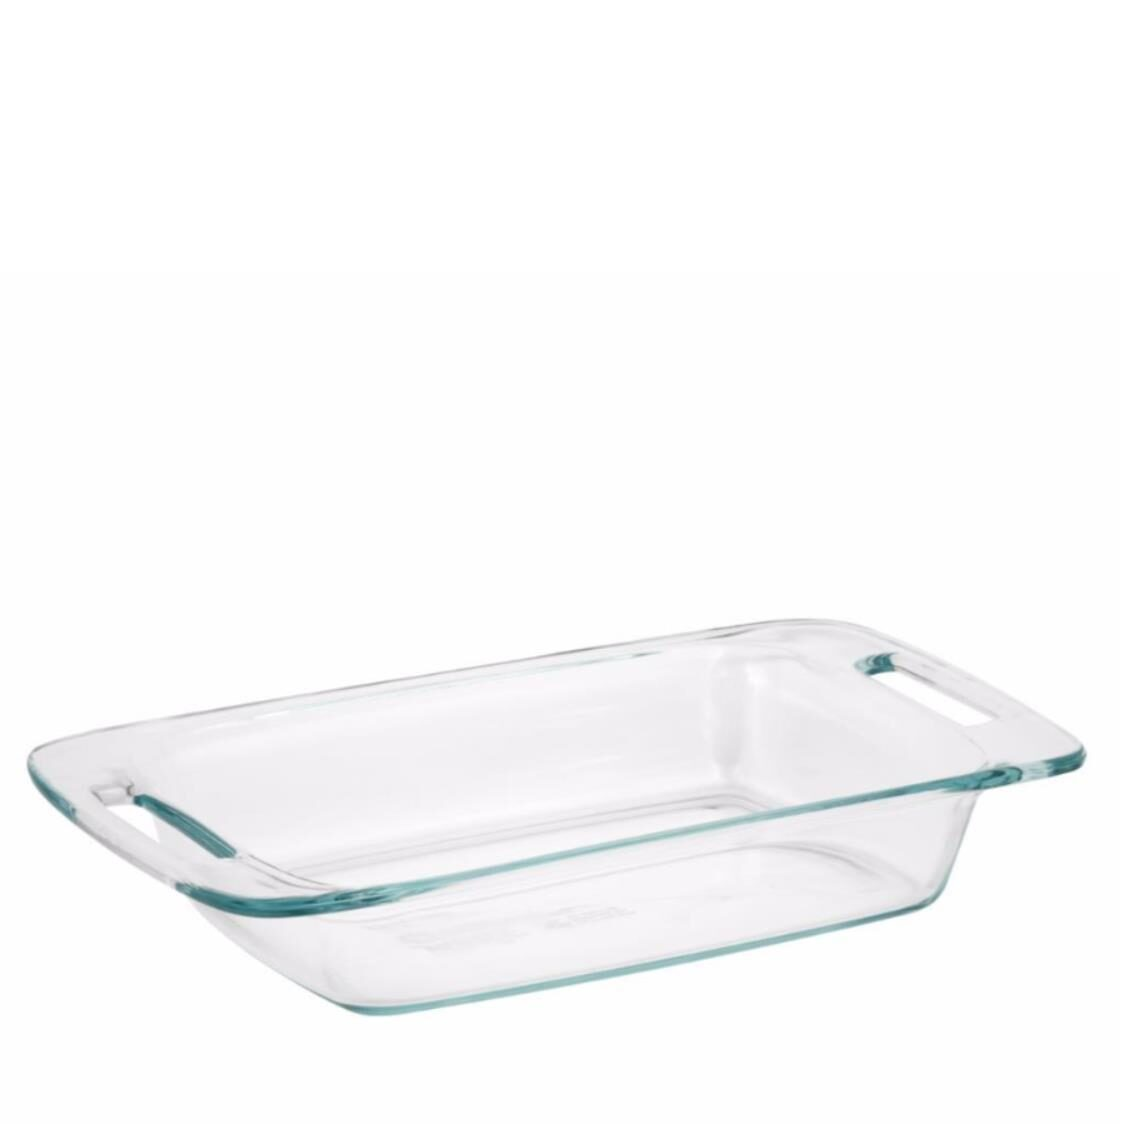 Oblong Baking Dish